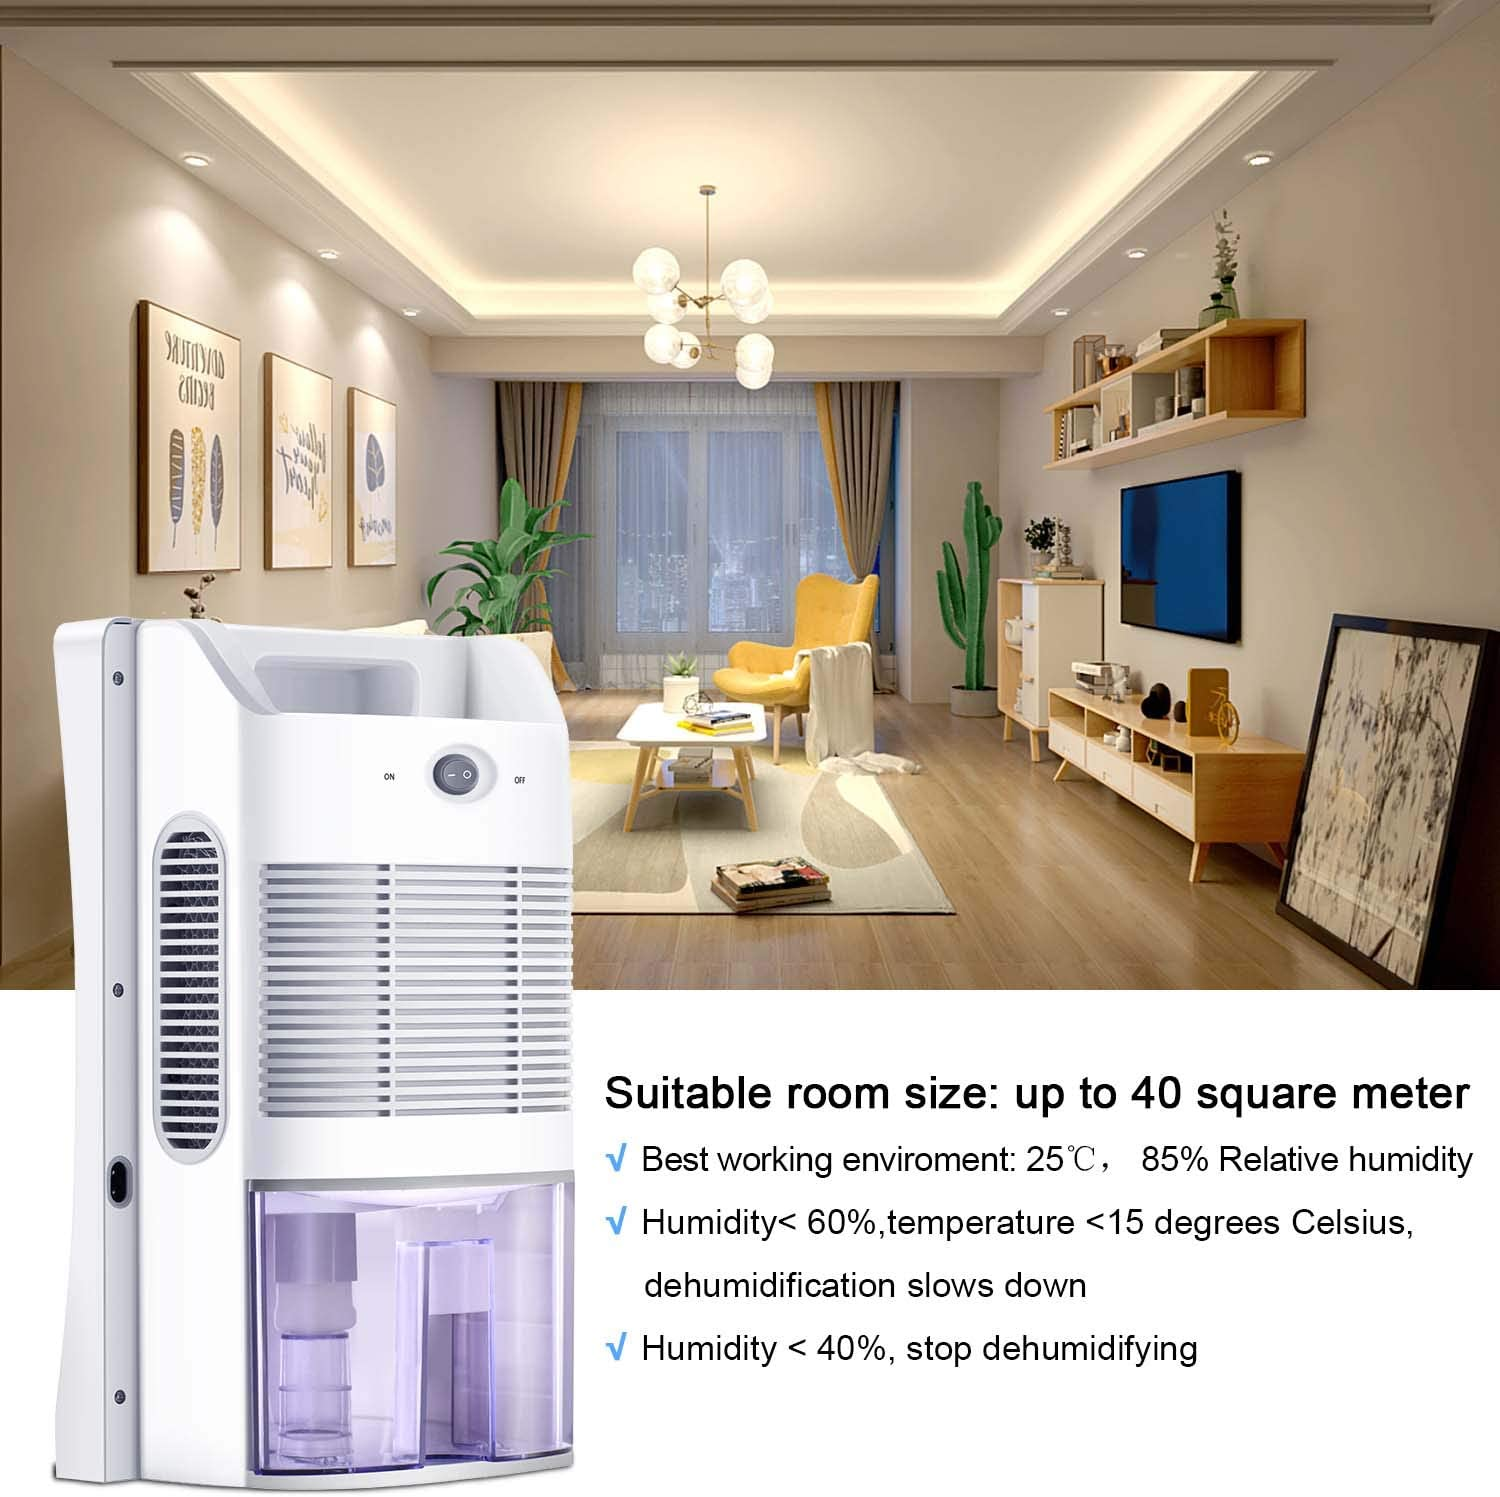 Compact and Portable Mini Dehumidifier for Basement Bedroom Bathroom Baby Room Home Office Electric Home Dehumidifier with 2L Water Tank LATITOP Small Dehumidifier High Humidity